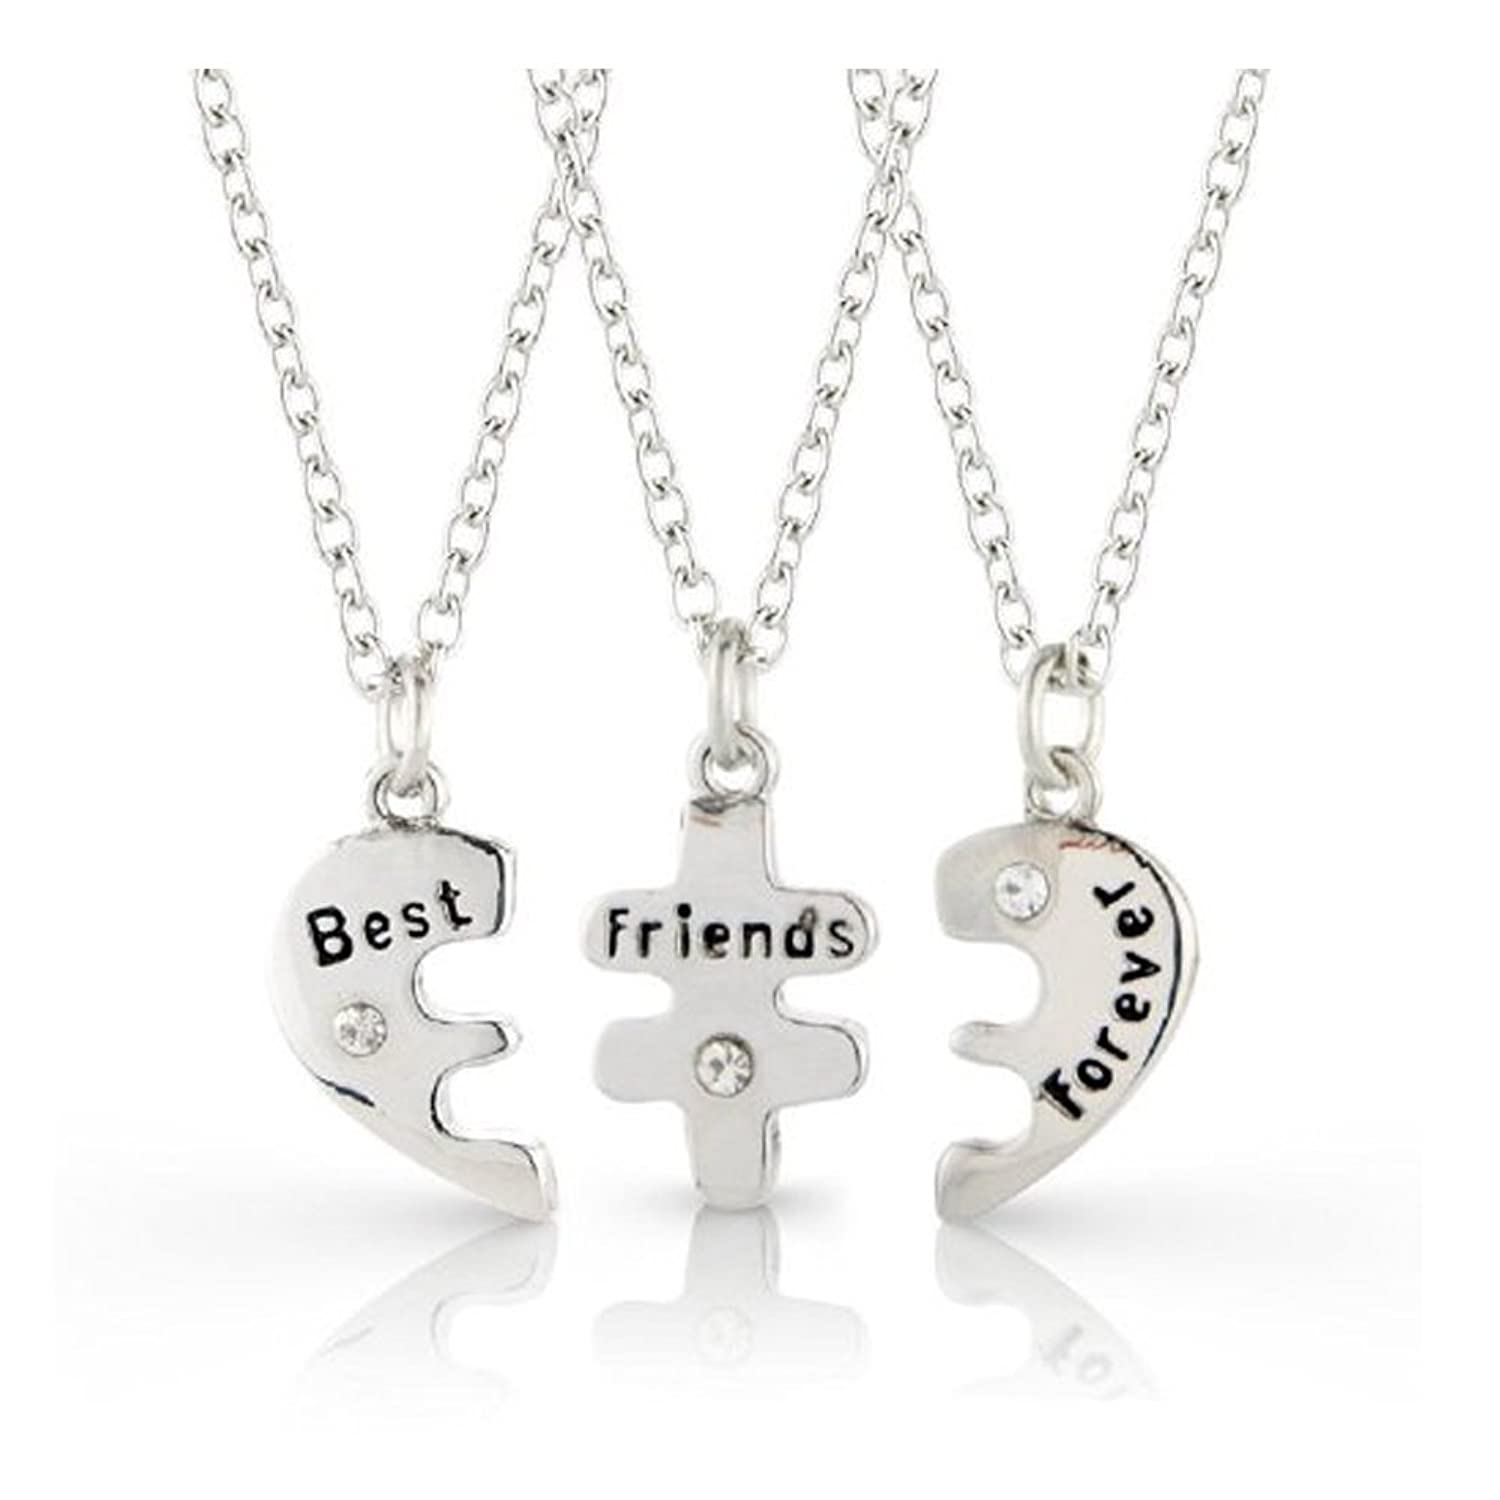 quote friendship pin how chaingethesubject pooh lockets by spell locket you friend do